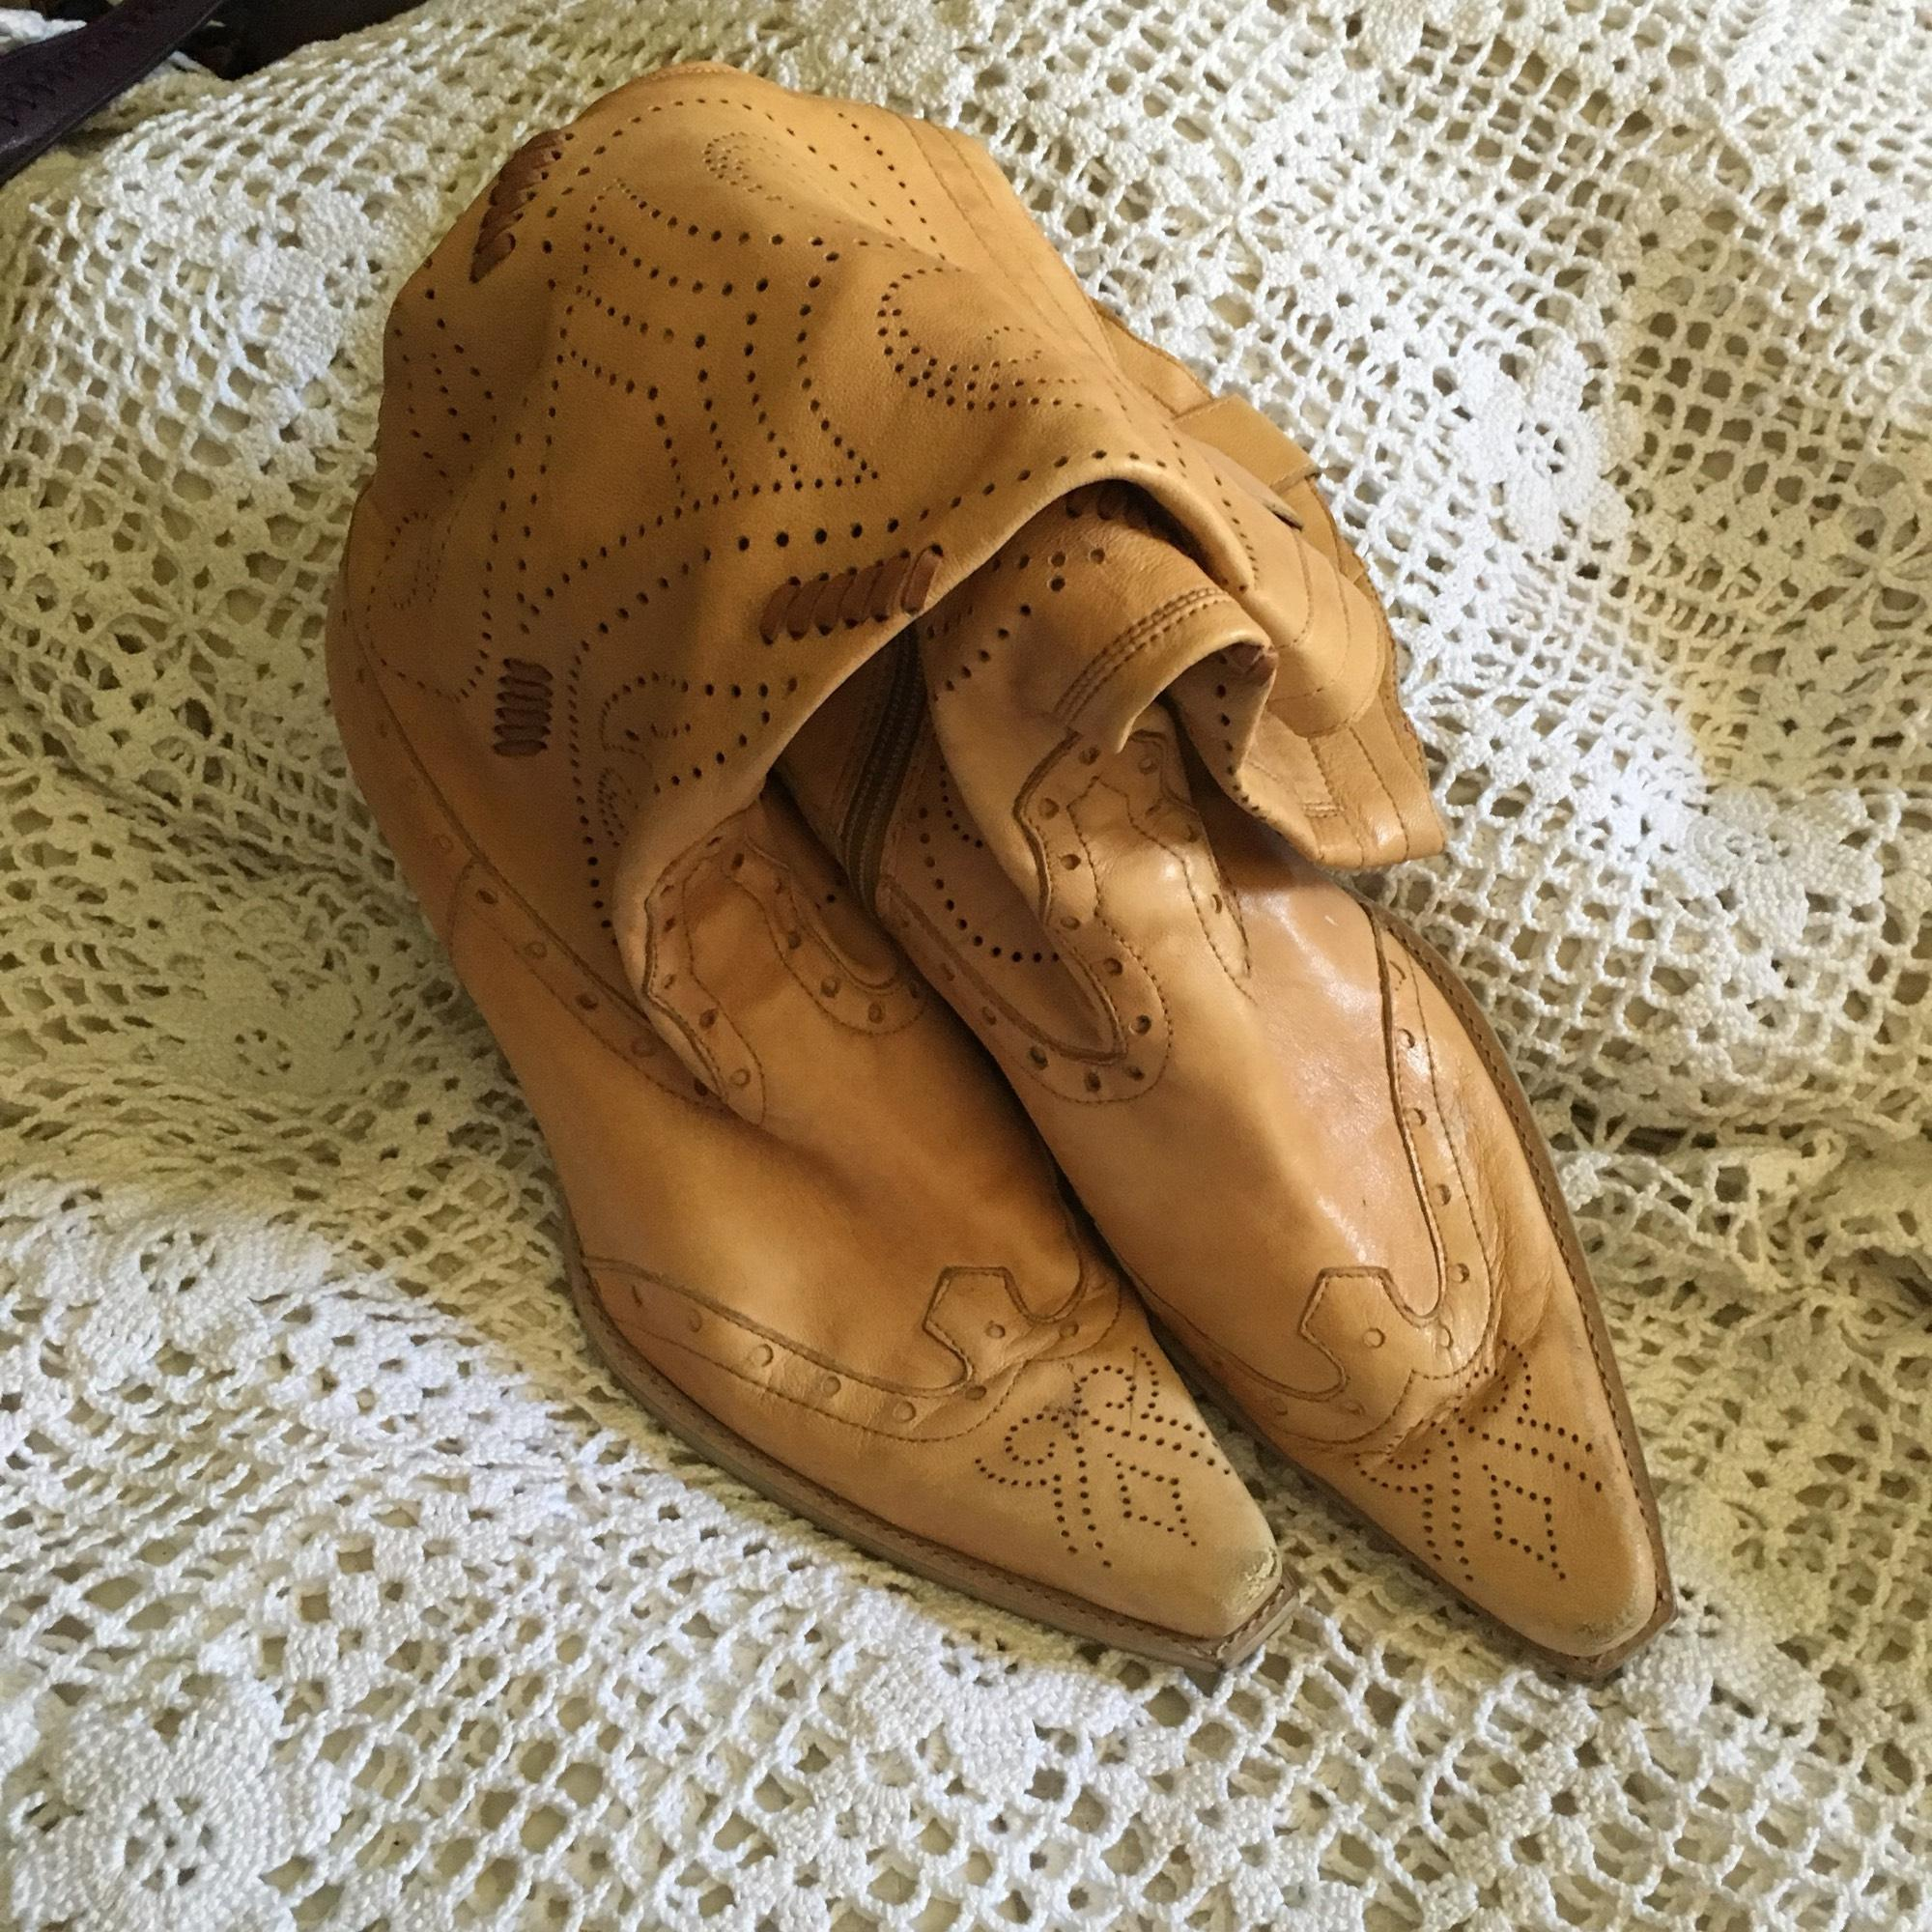 64893ef4c312 ... BCBGMAXAZRIA Tan Soft Fit Western Style Boots Booties Size US 9 9 9  Regular ...